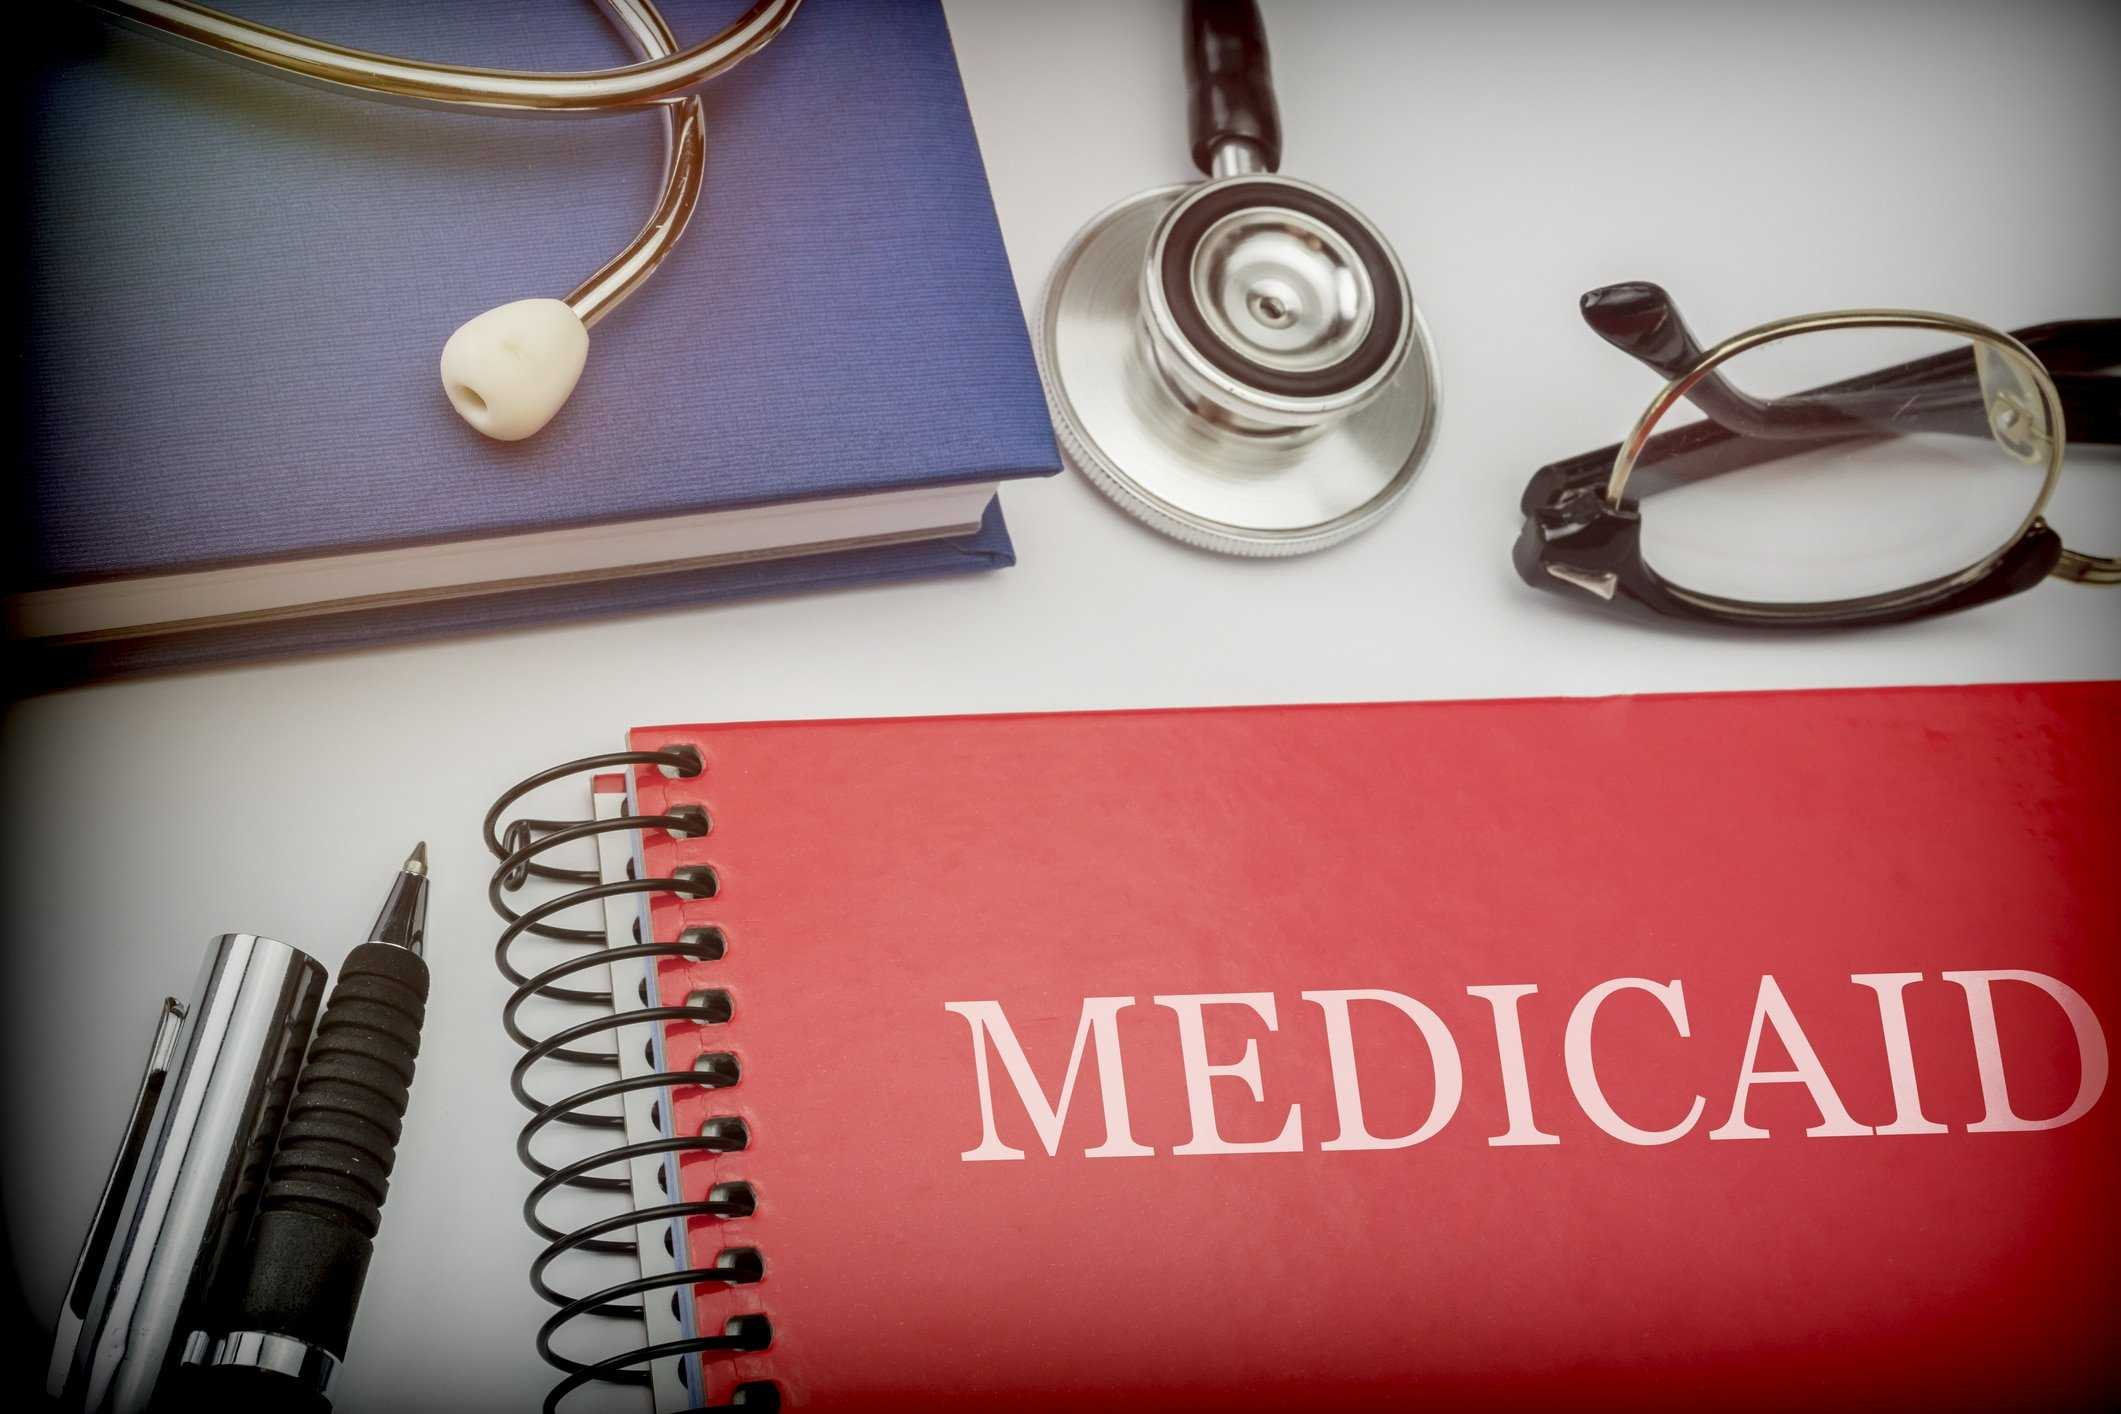 Medicaid Planning Lawyer Tampa